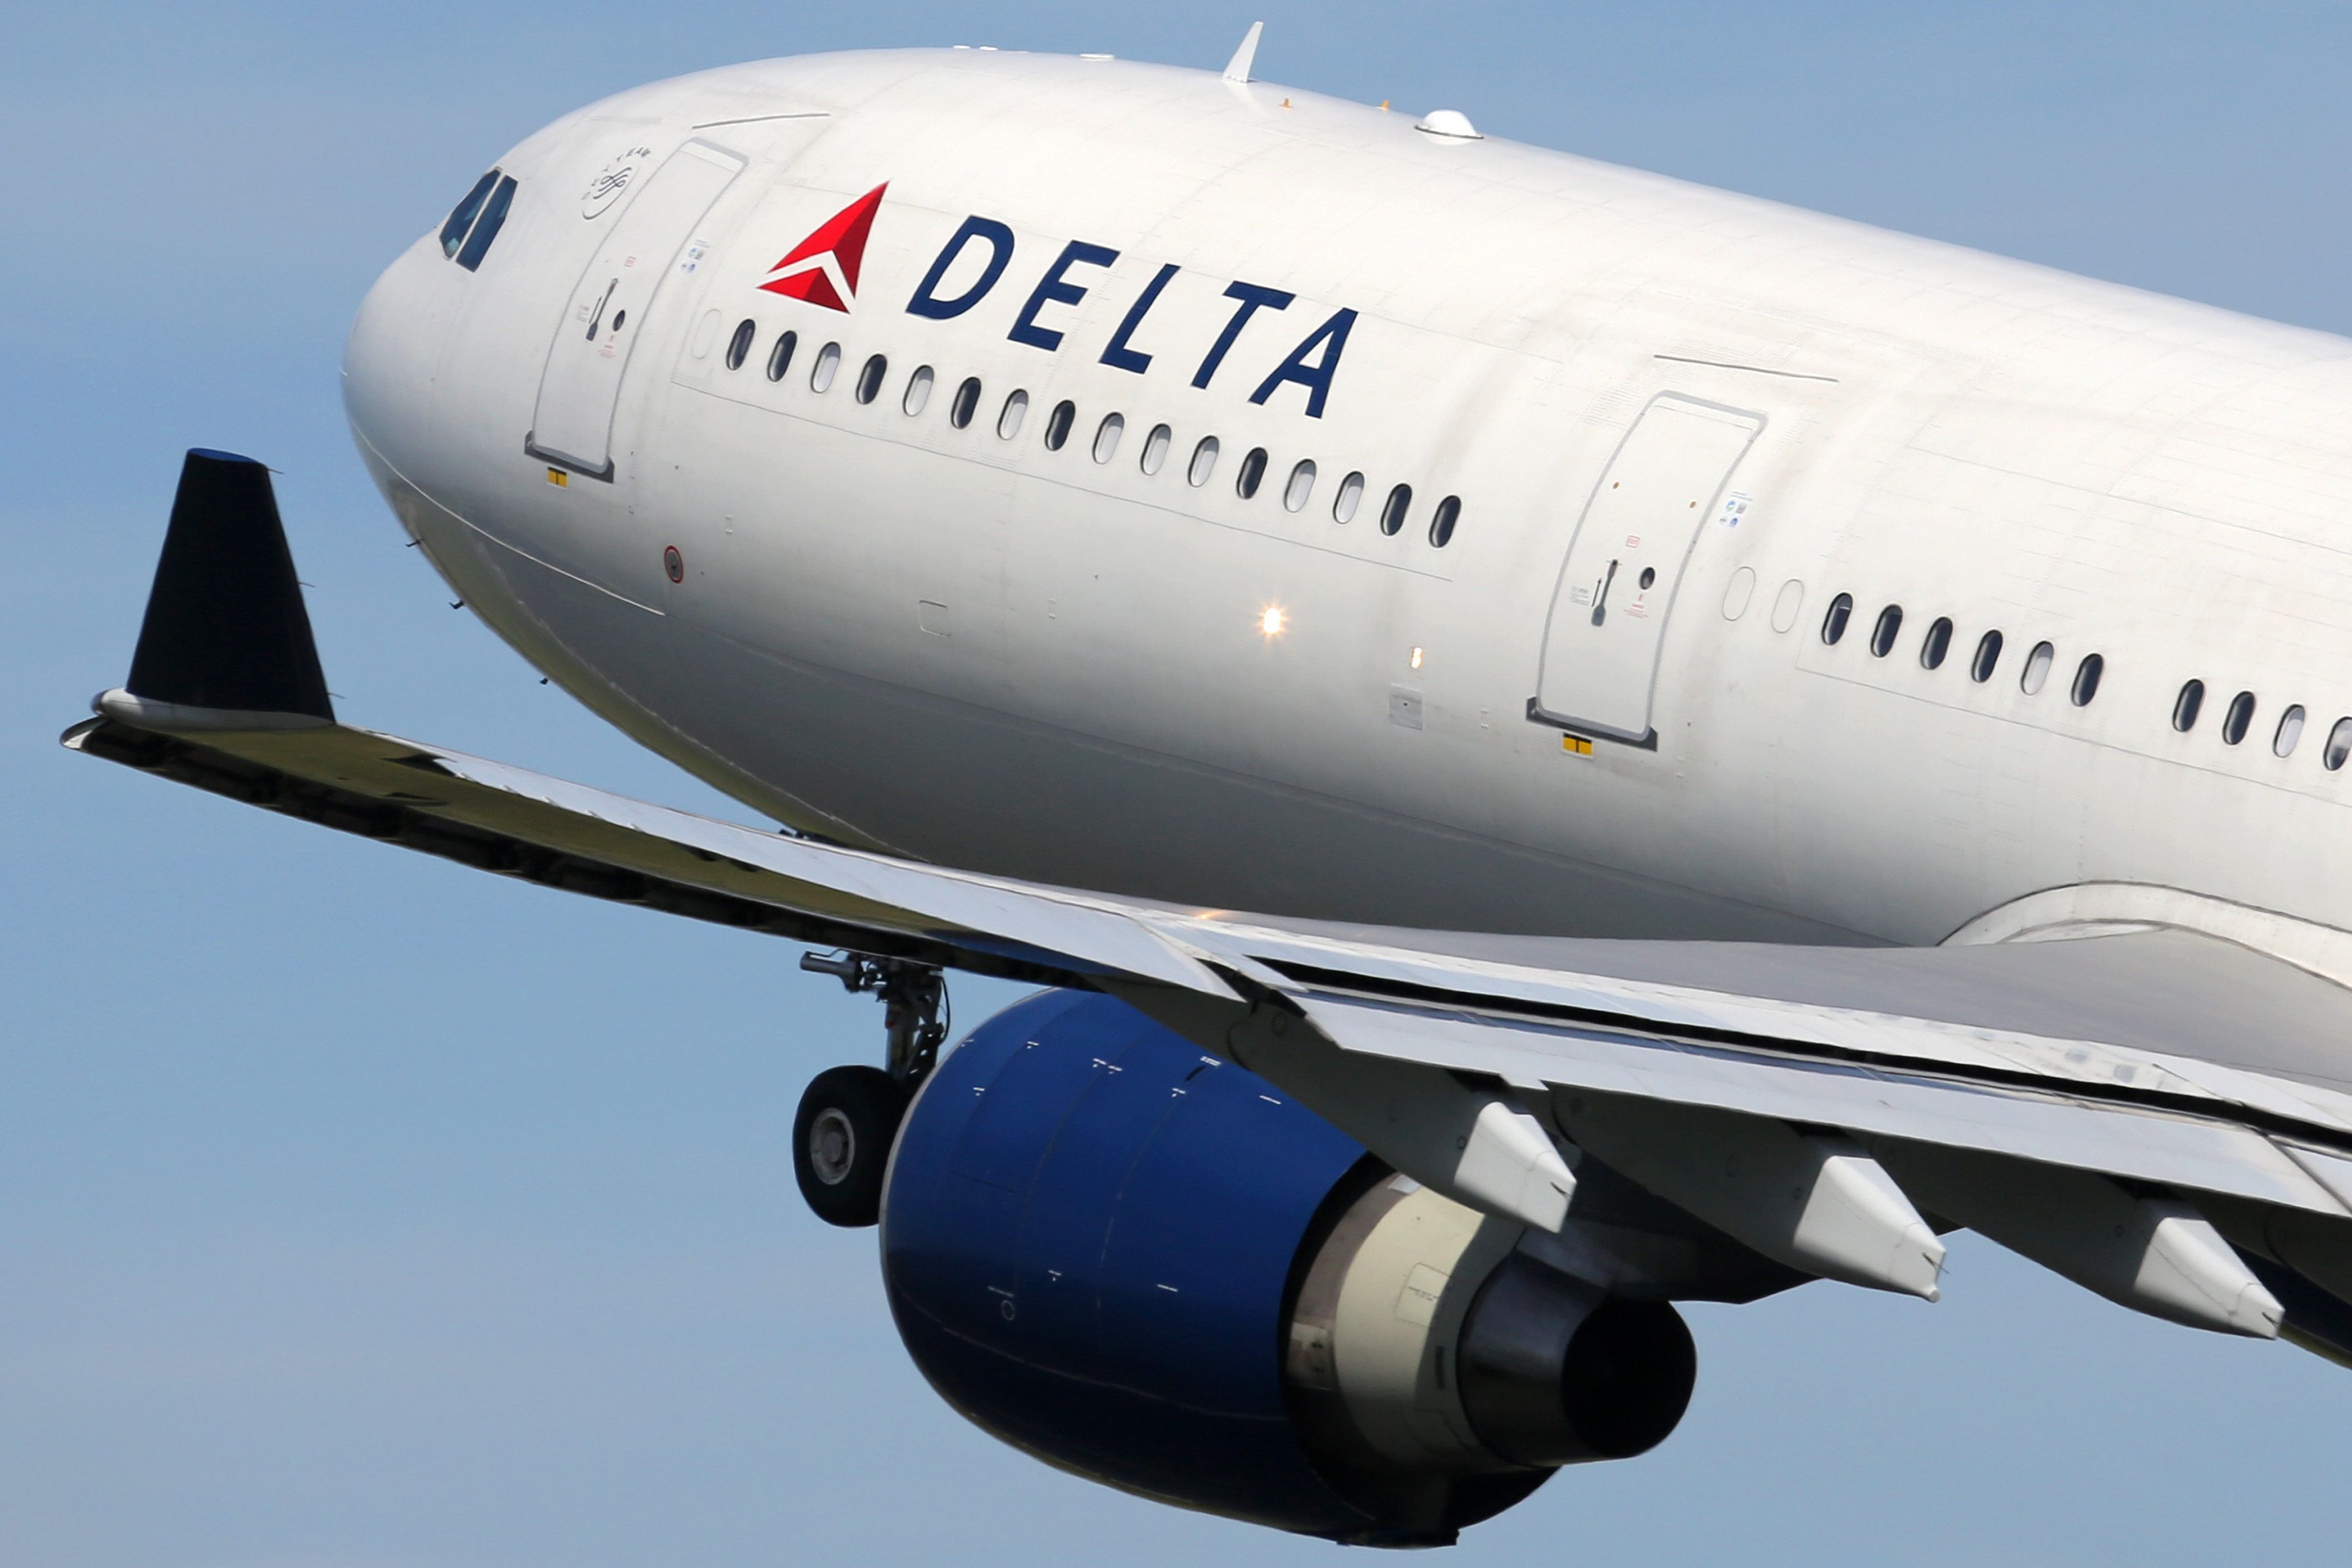 A Delta Air Lines flight takes off from Amsterdam Airport in the Netherlands.